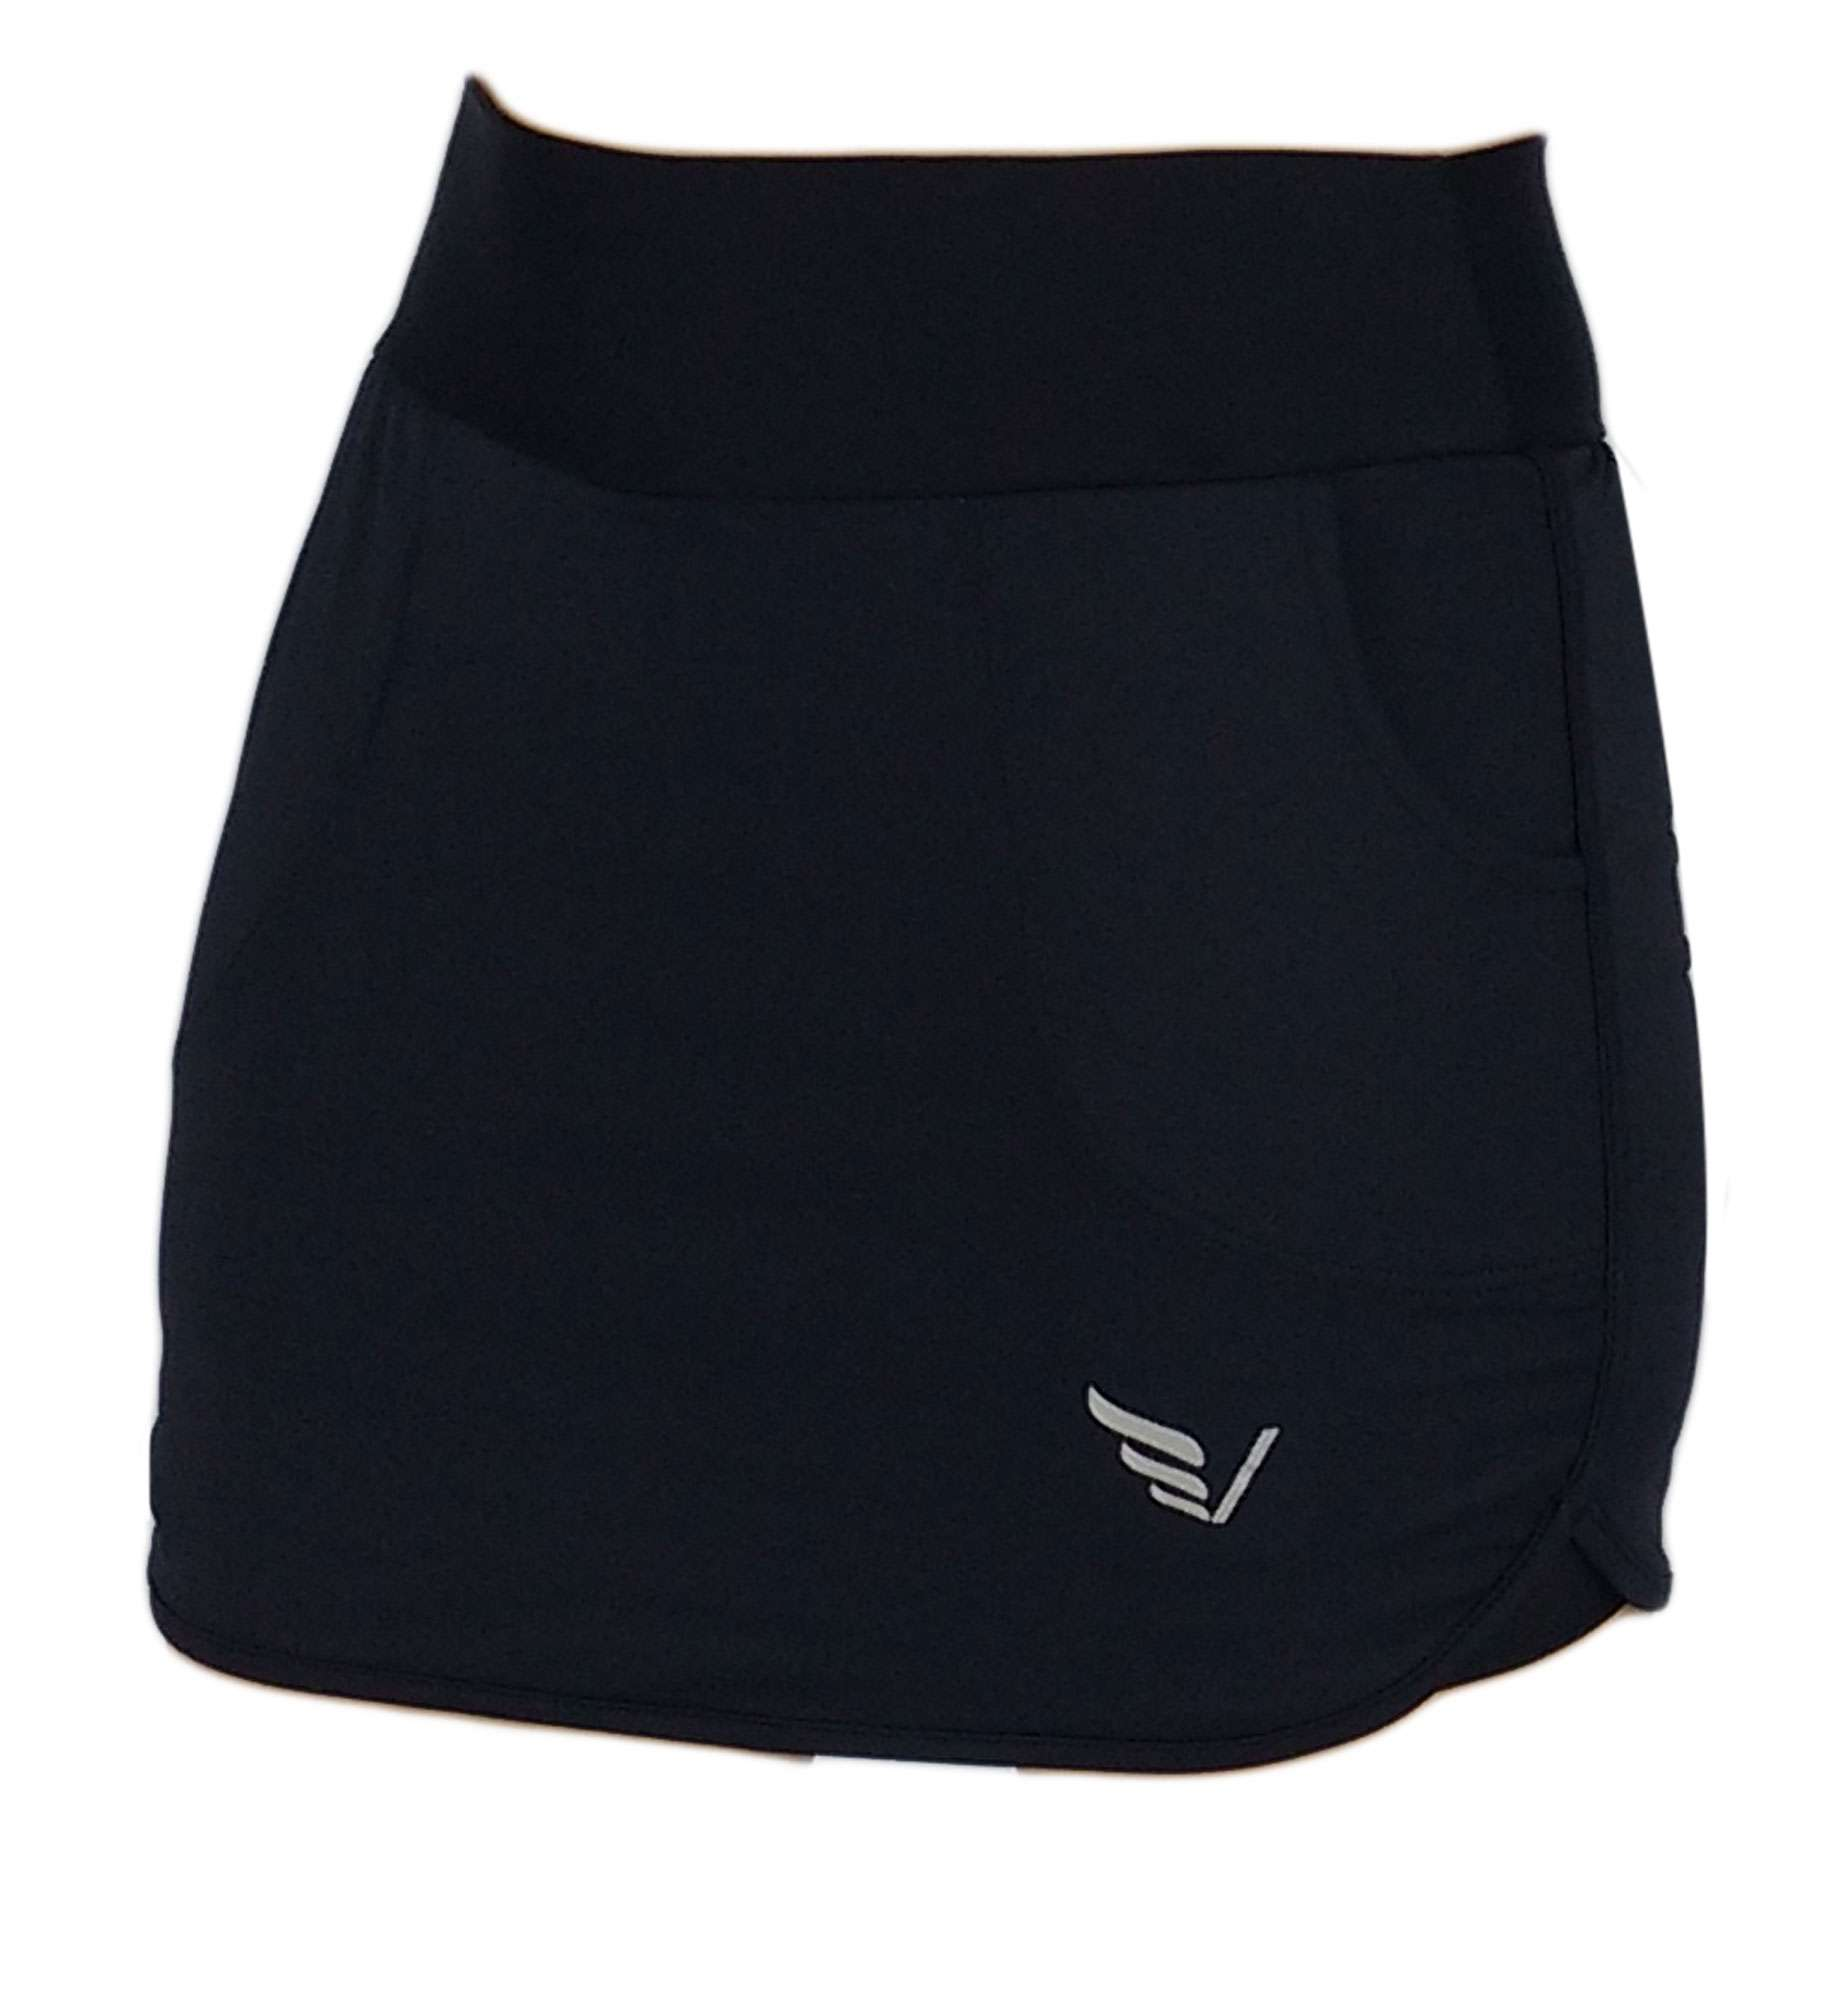 SAIA VILLA SPORTS COM SHORTS PRETO